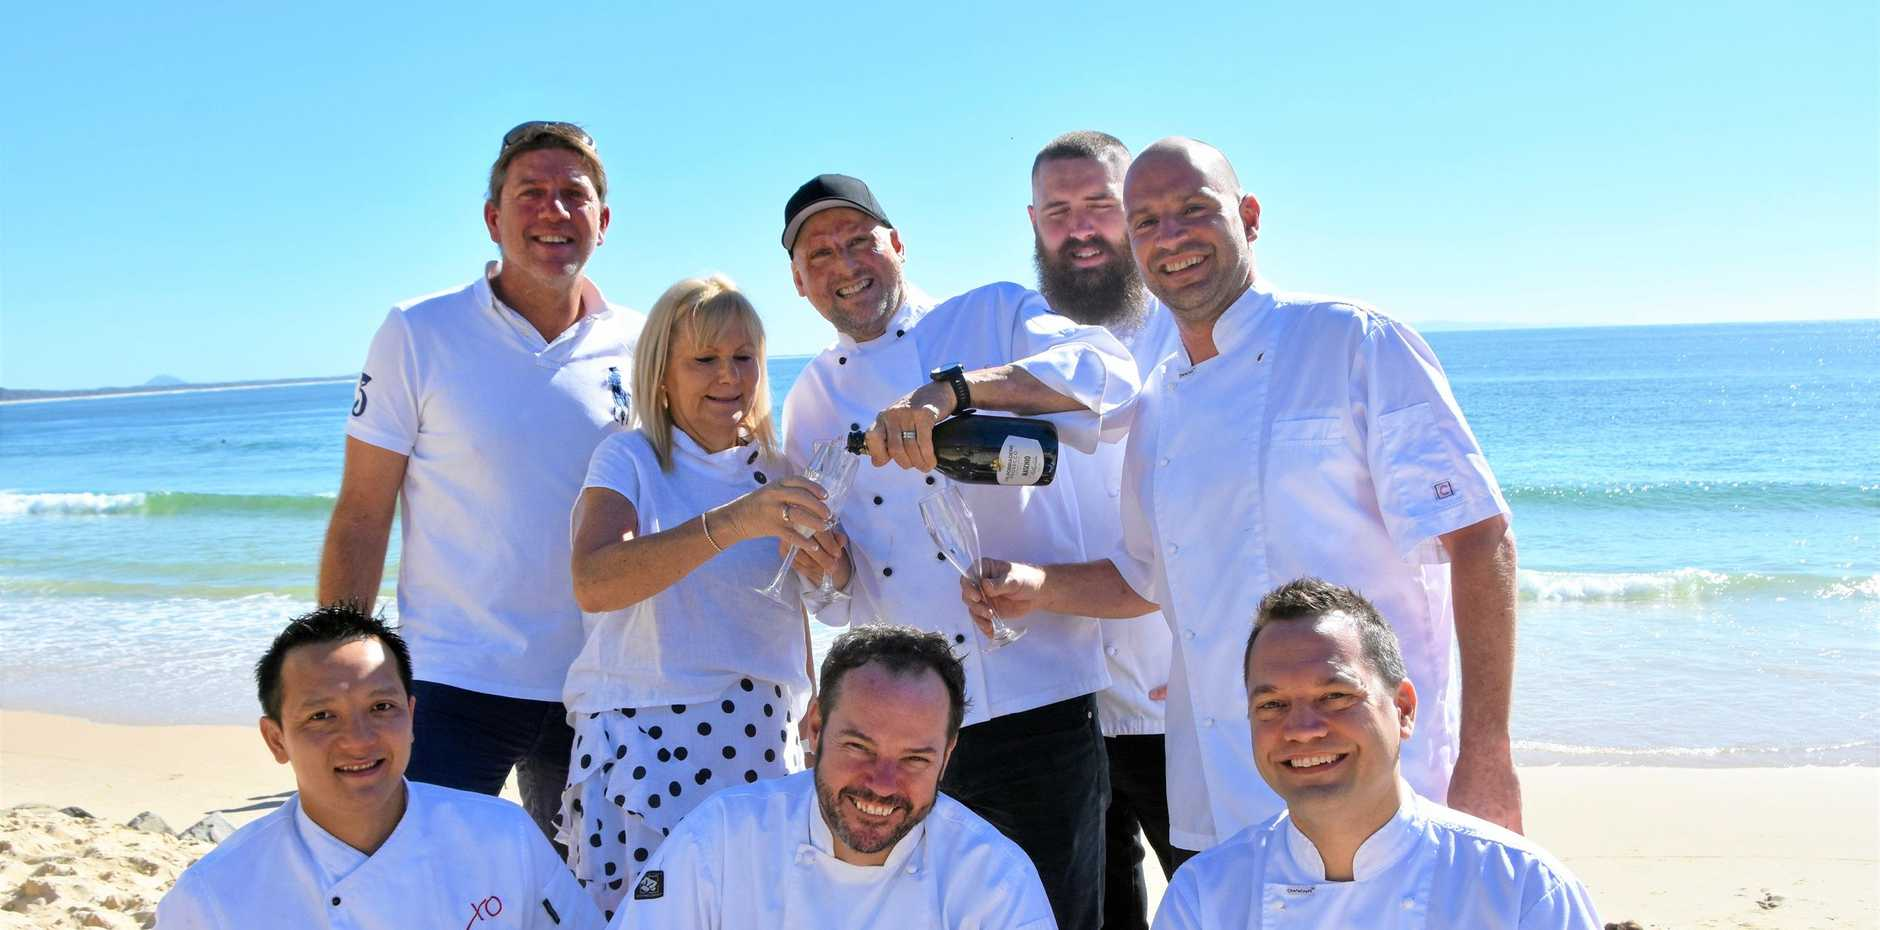 DINE IN WHITE: (Front left) Jame Wu, Shane Bailey, Ollie Carruthers, (back left) Phil Bradford, Susie O'Neil, Matt Golinski, Andrew Wilcox and Mitch Kmiecik .